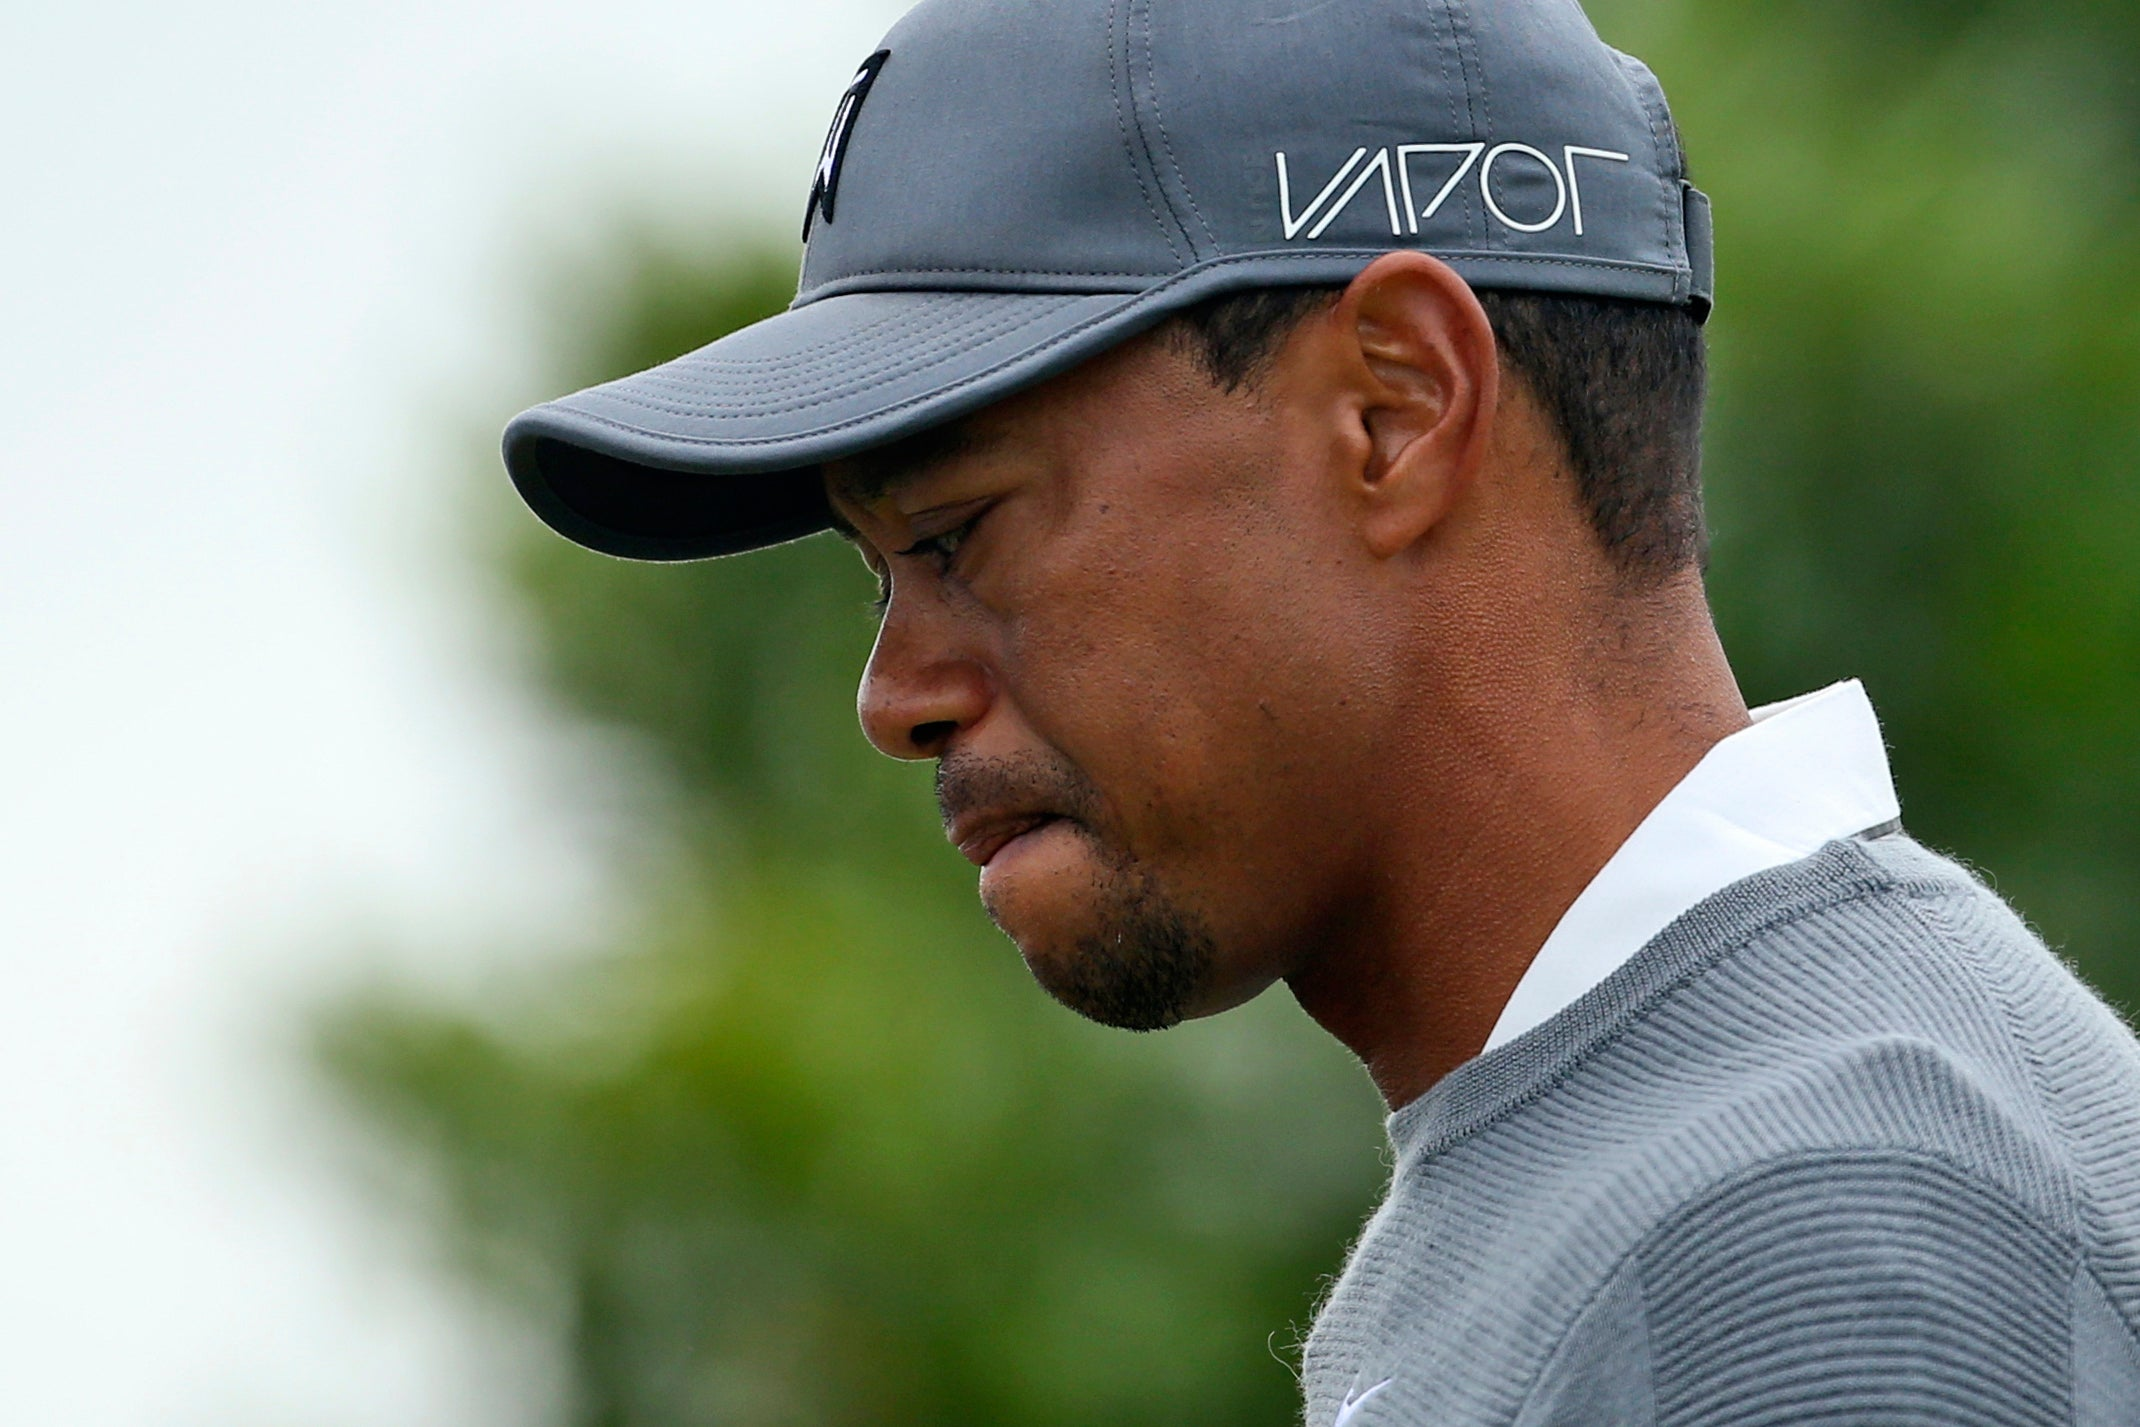 paul azinger calls tiger woods a hack during british open